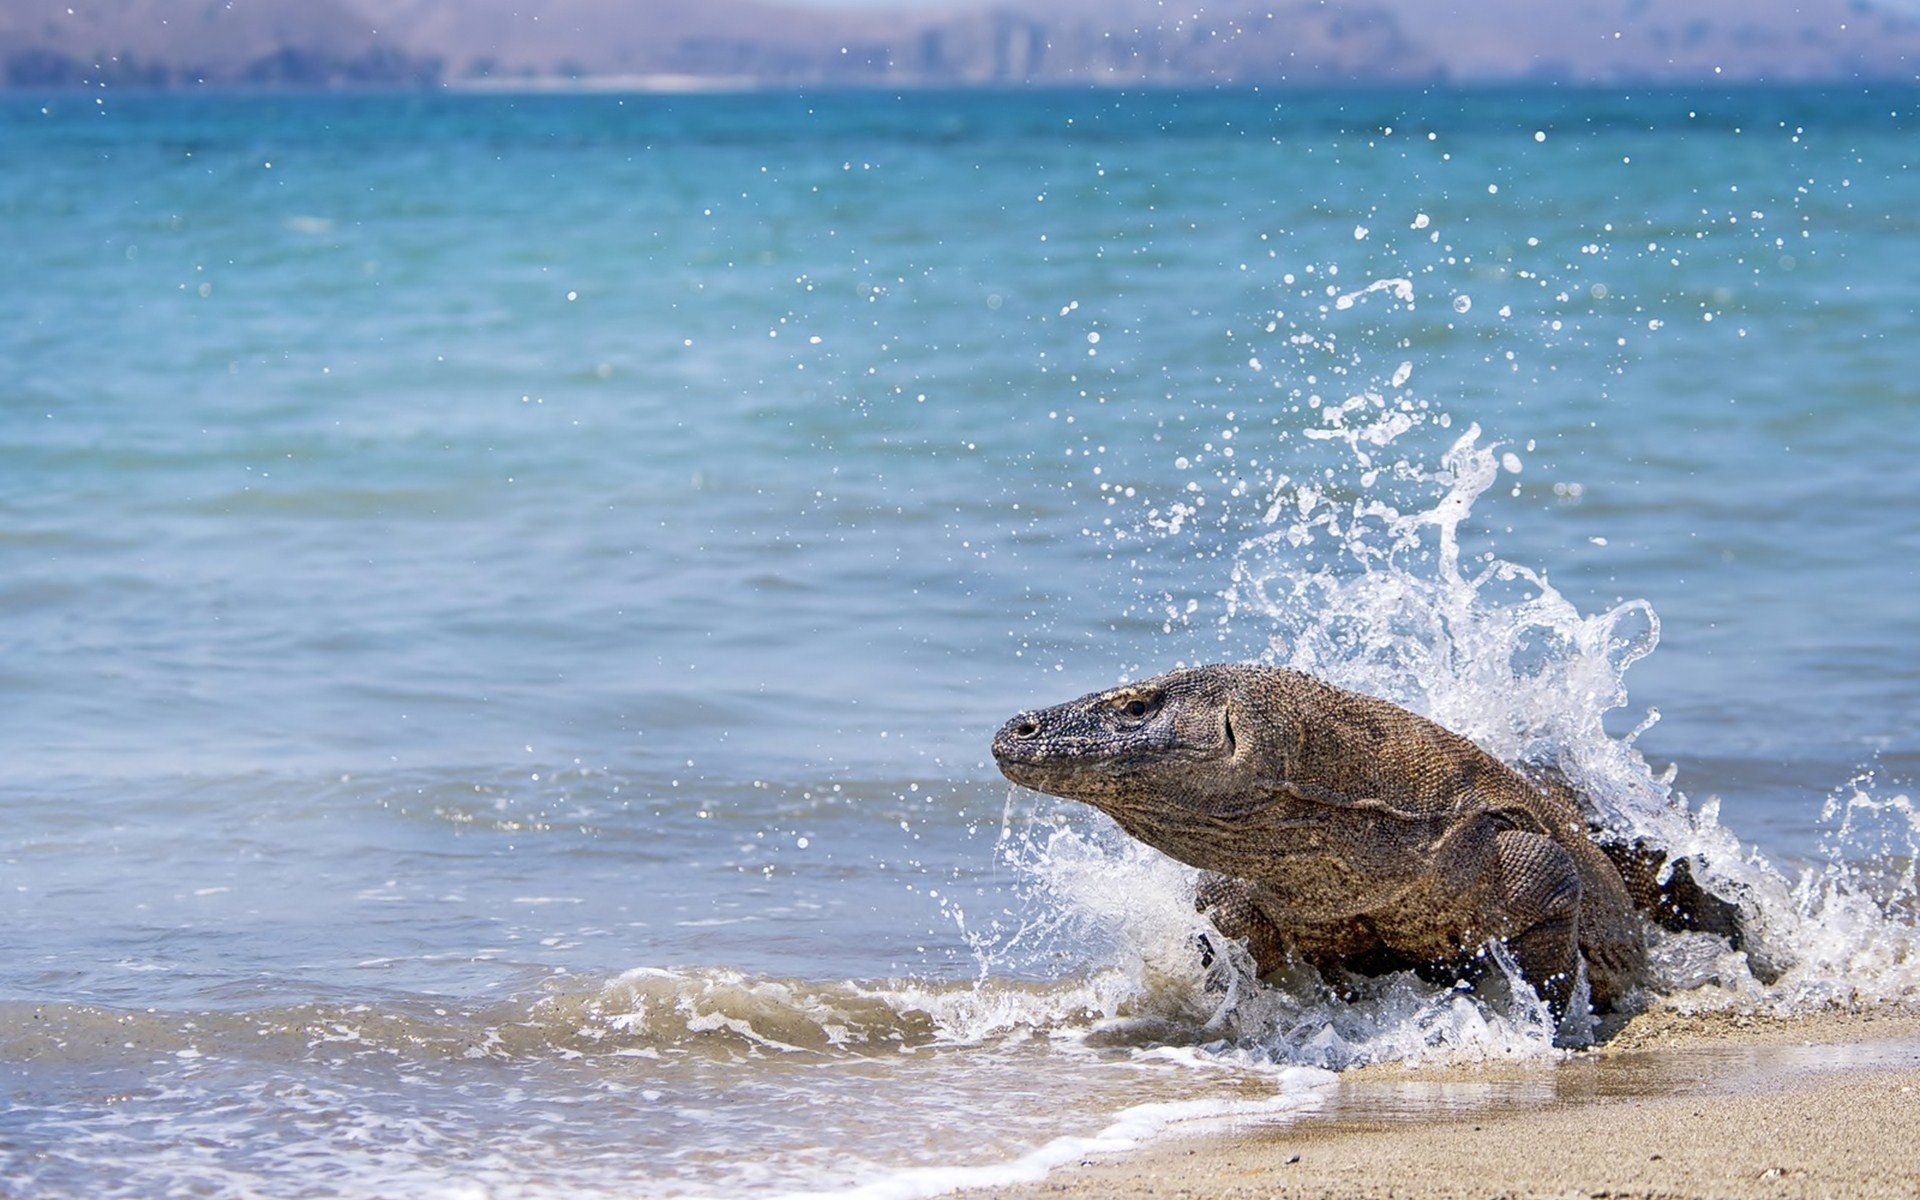 Lizard beach sand water monitor ocran sea wallpaper | 1920x1200